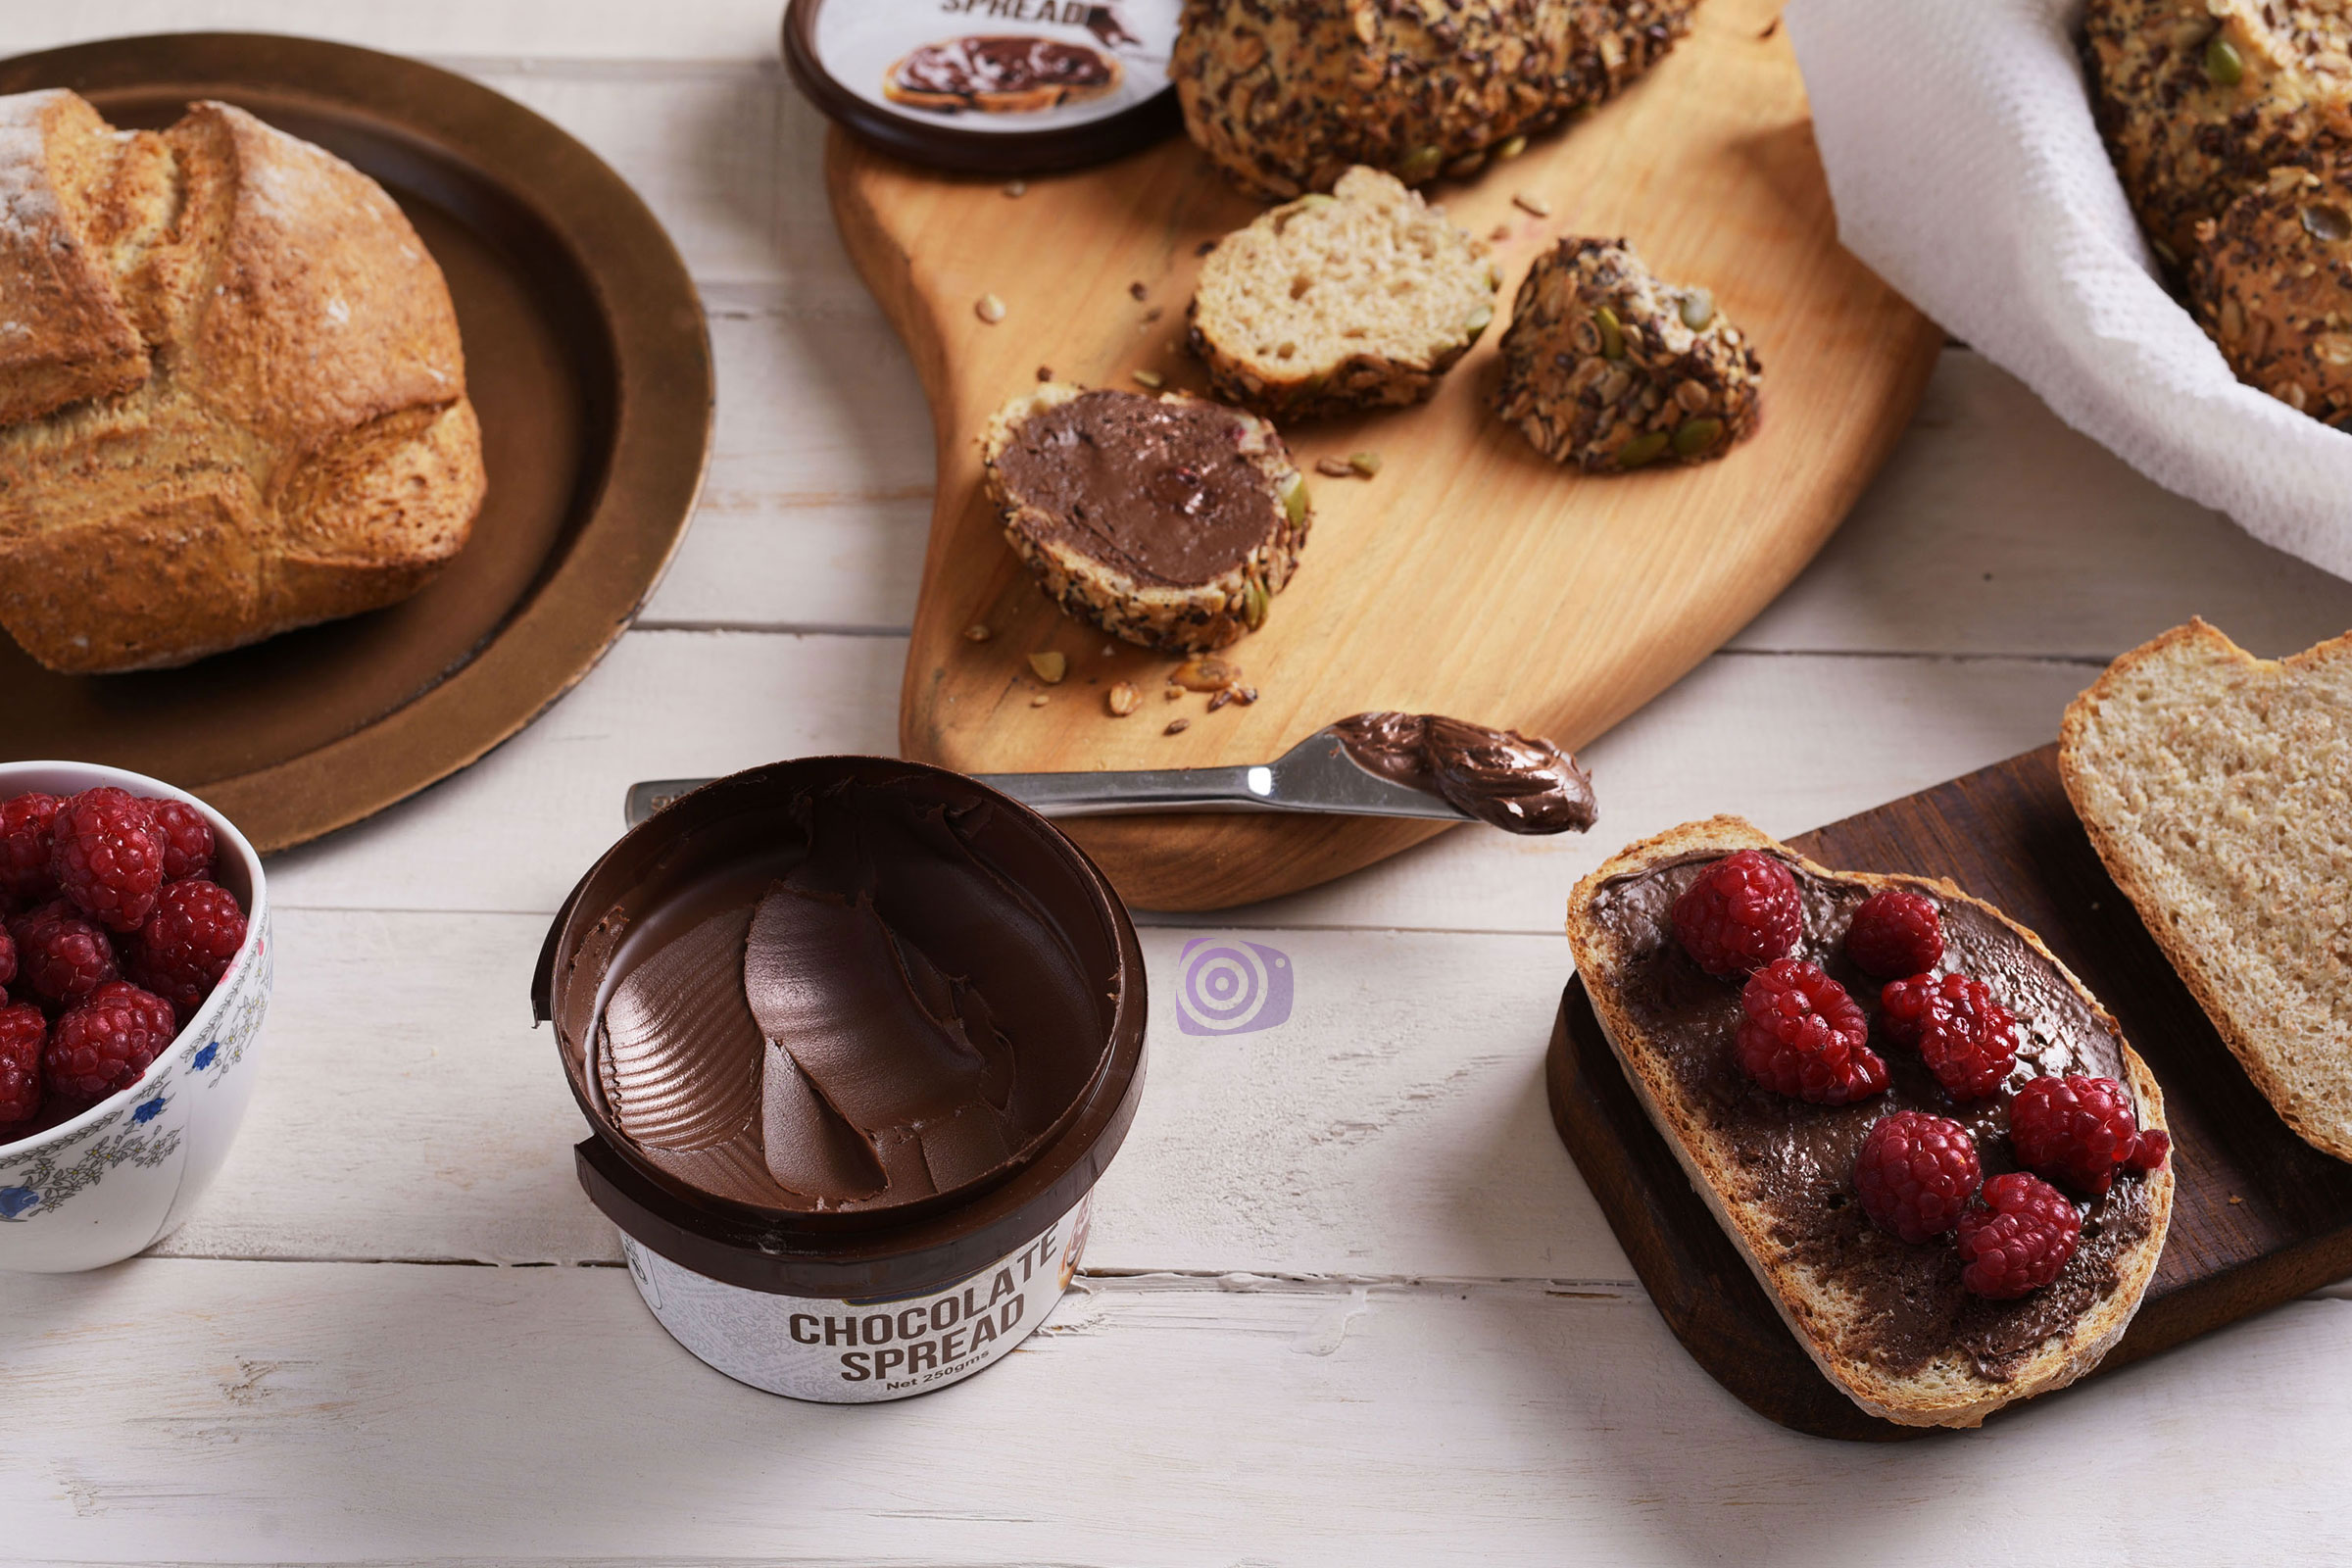 Product photography of Dairyland Chocolate spread